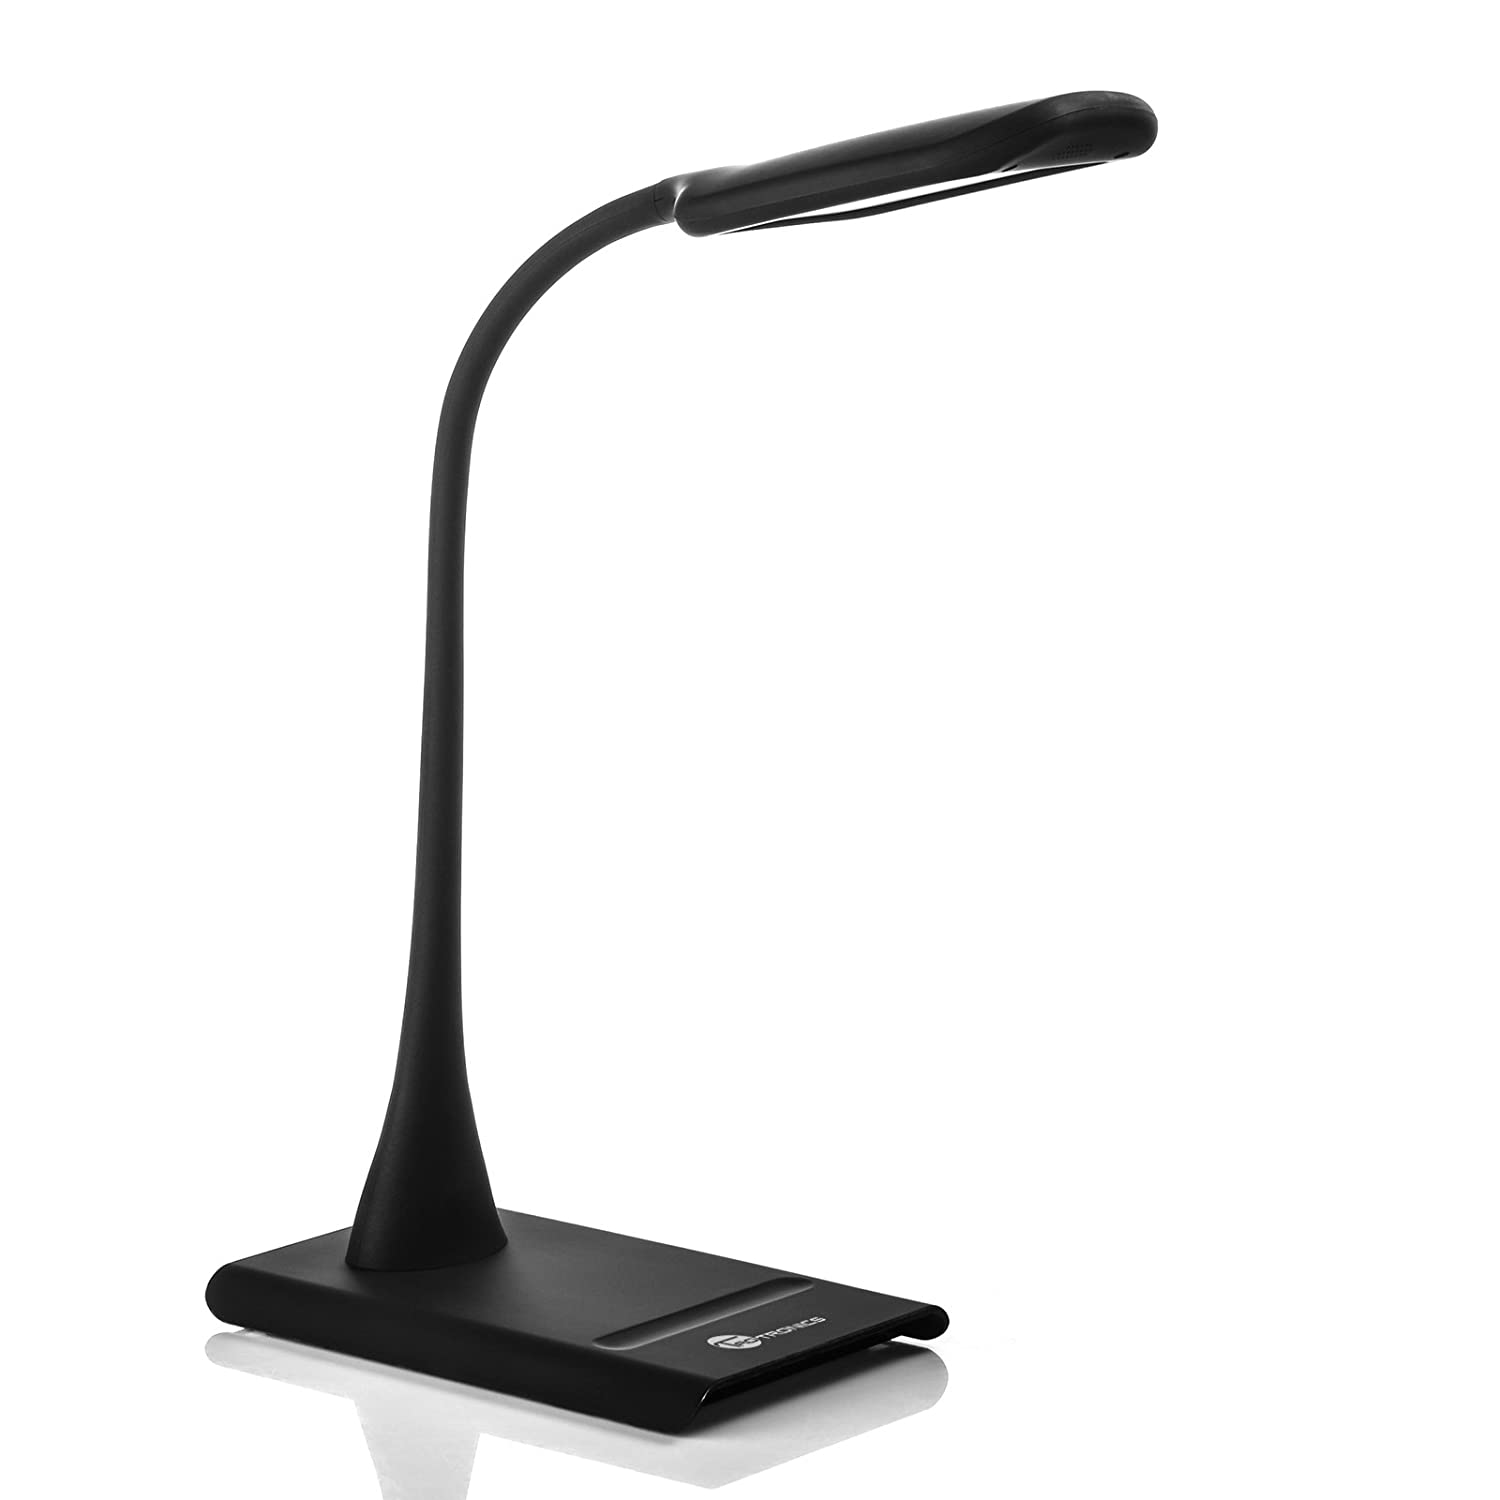 dimmable eye care led desk lamp with 9w flexible neck 7 level dimmer. Black Bedroom Furniture Sets. Home Design Ideas